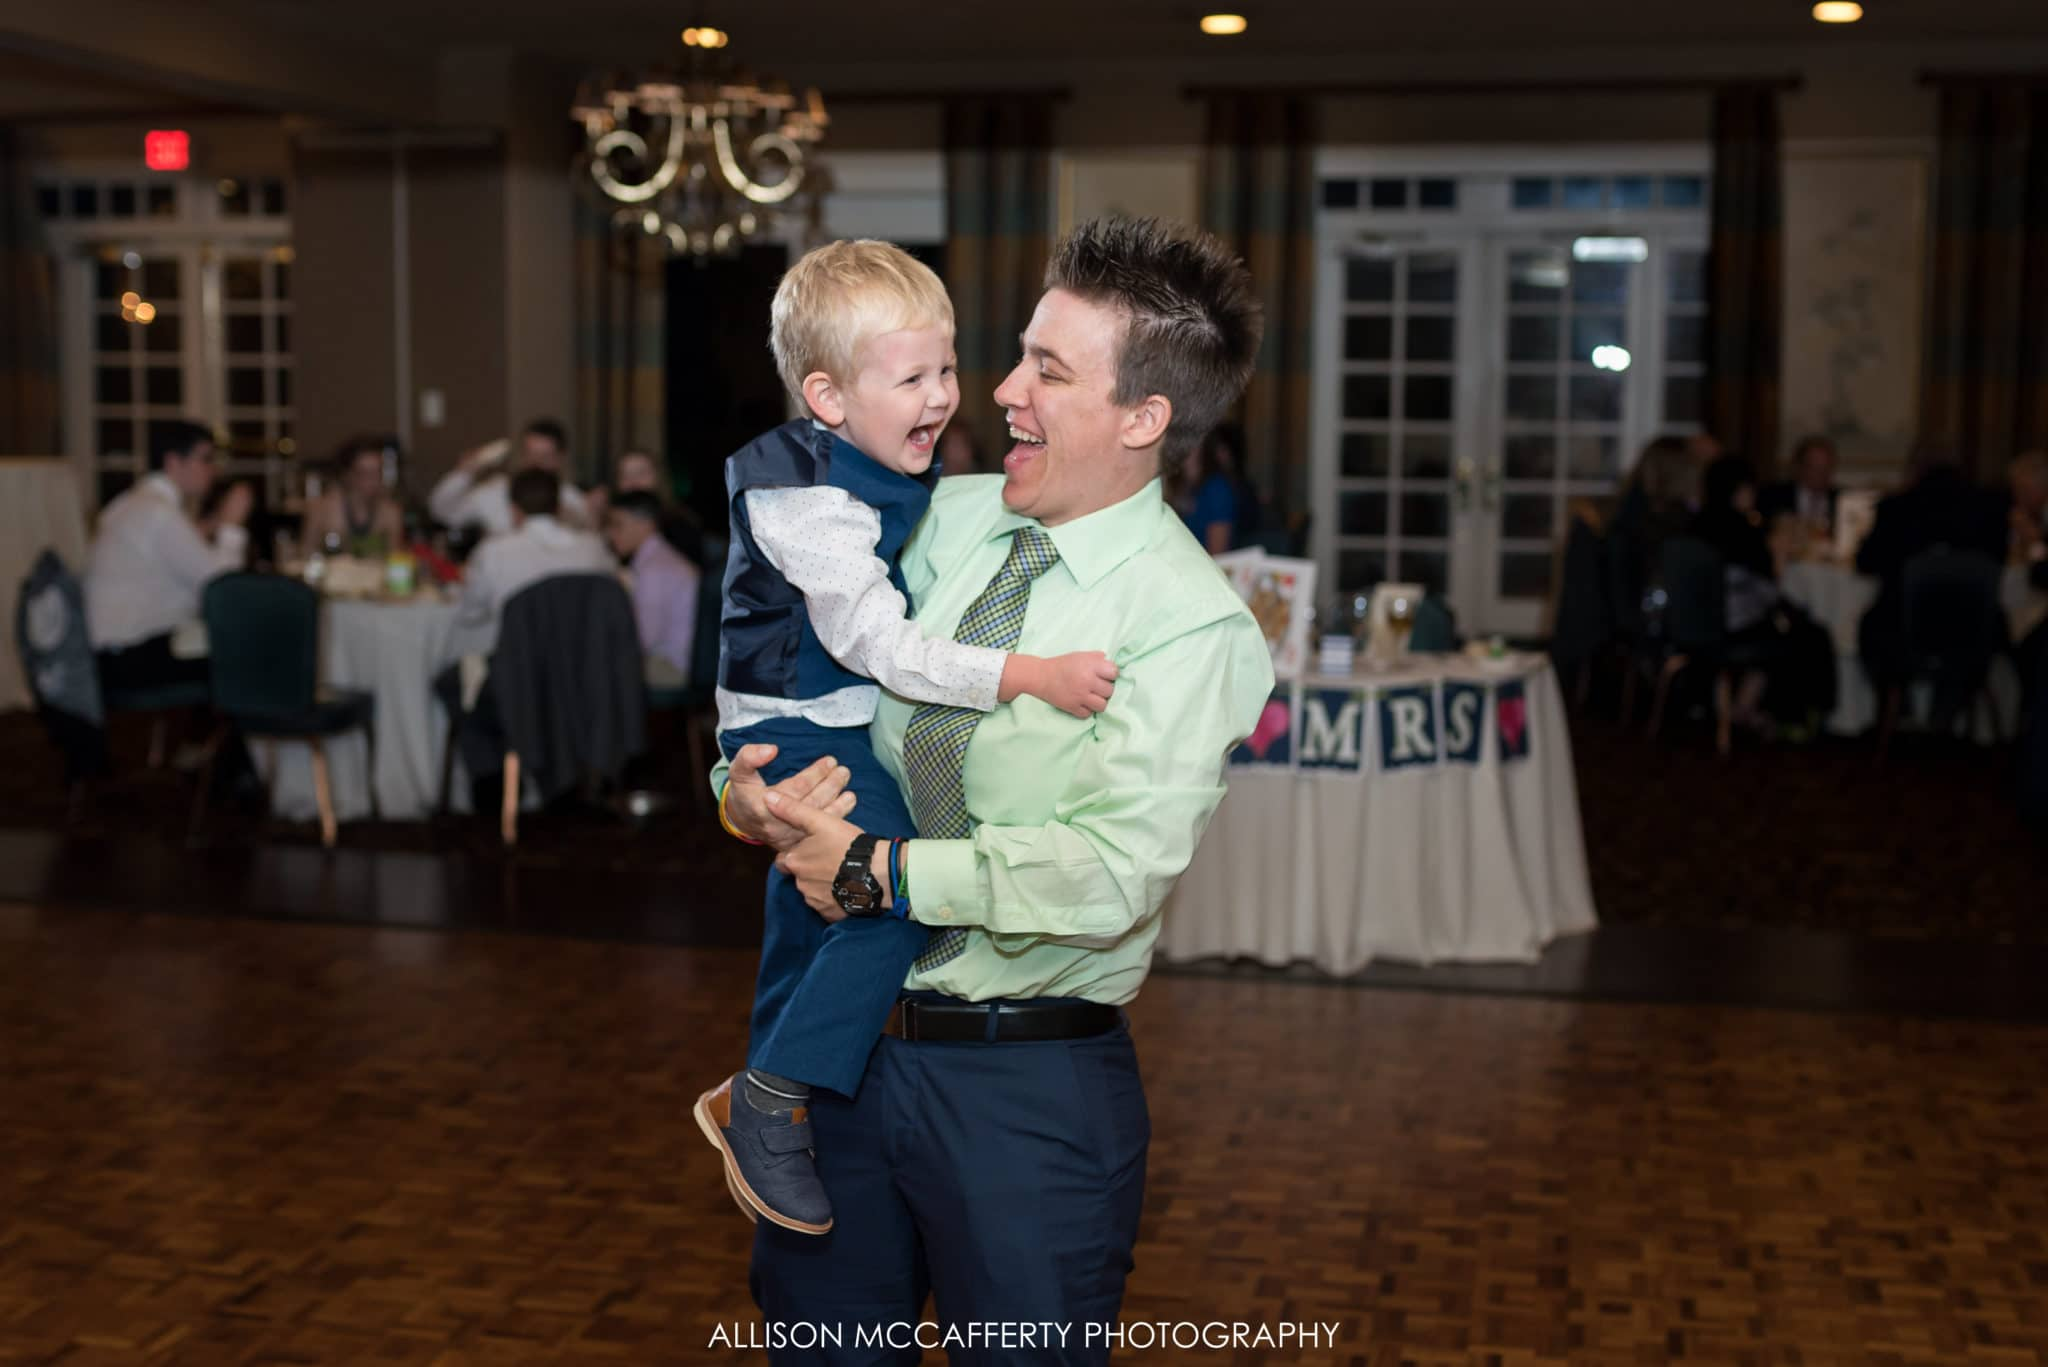 Ring bearer dancing at wedding in South Jersey